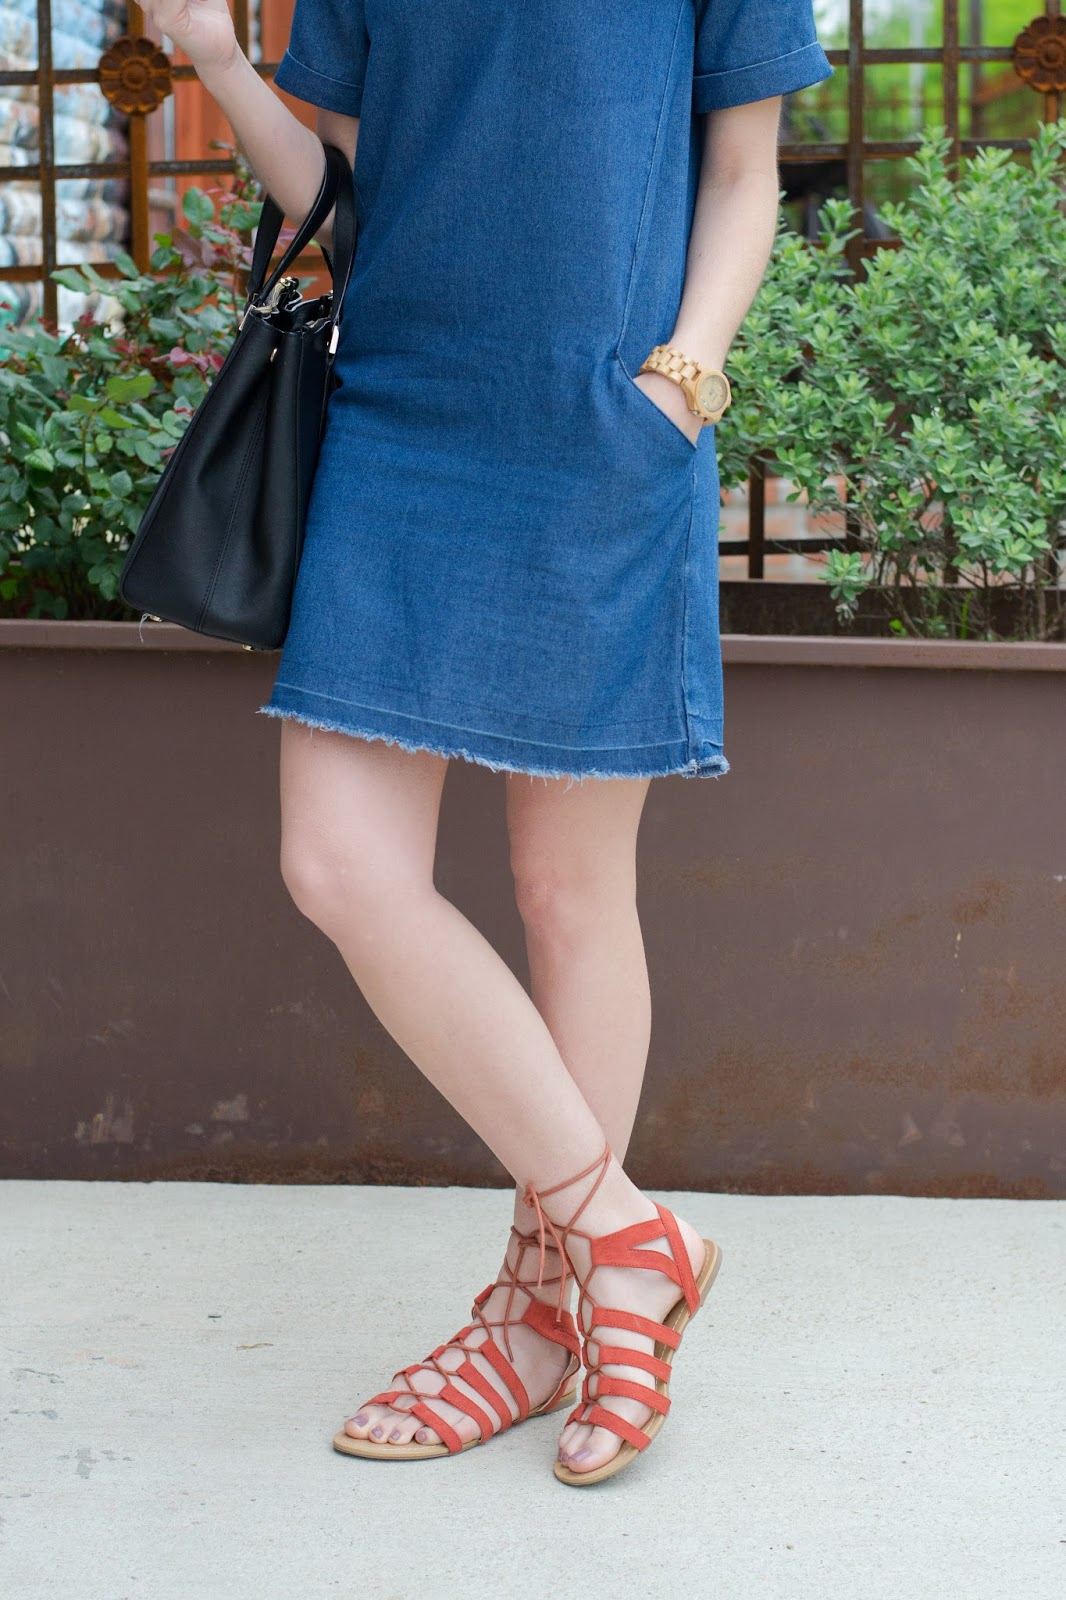 Weekend summer outfit with colorful lace up sandals and denim frayed dress